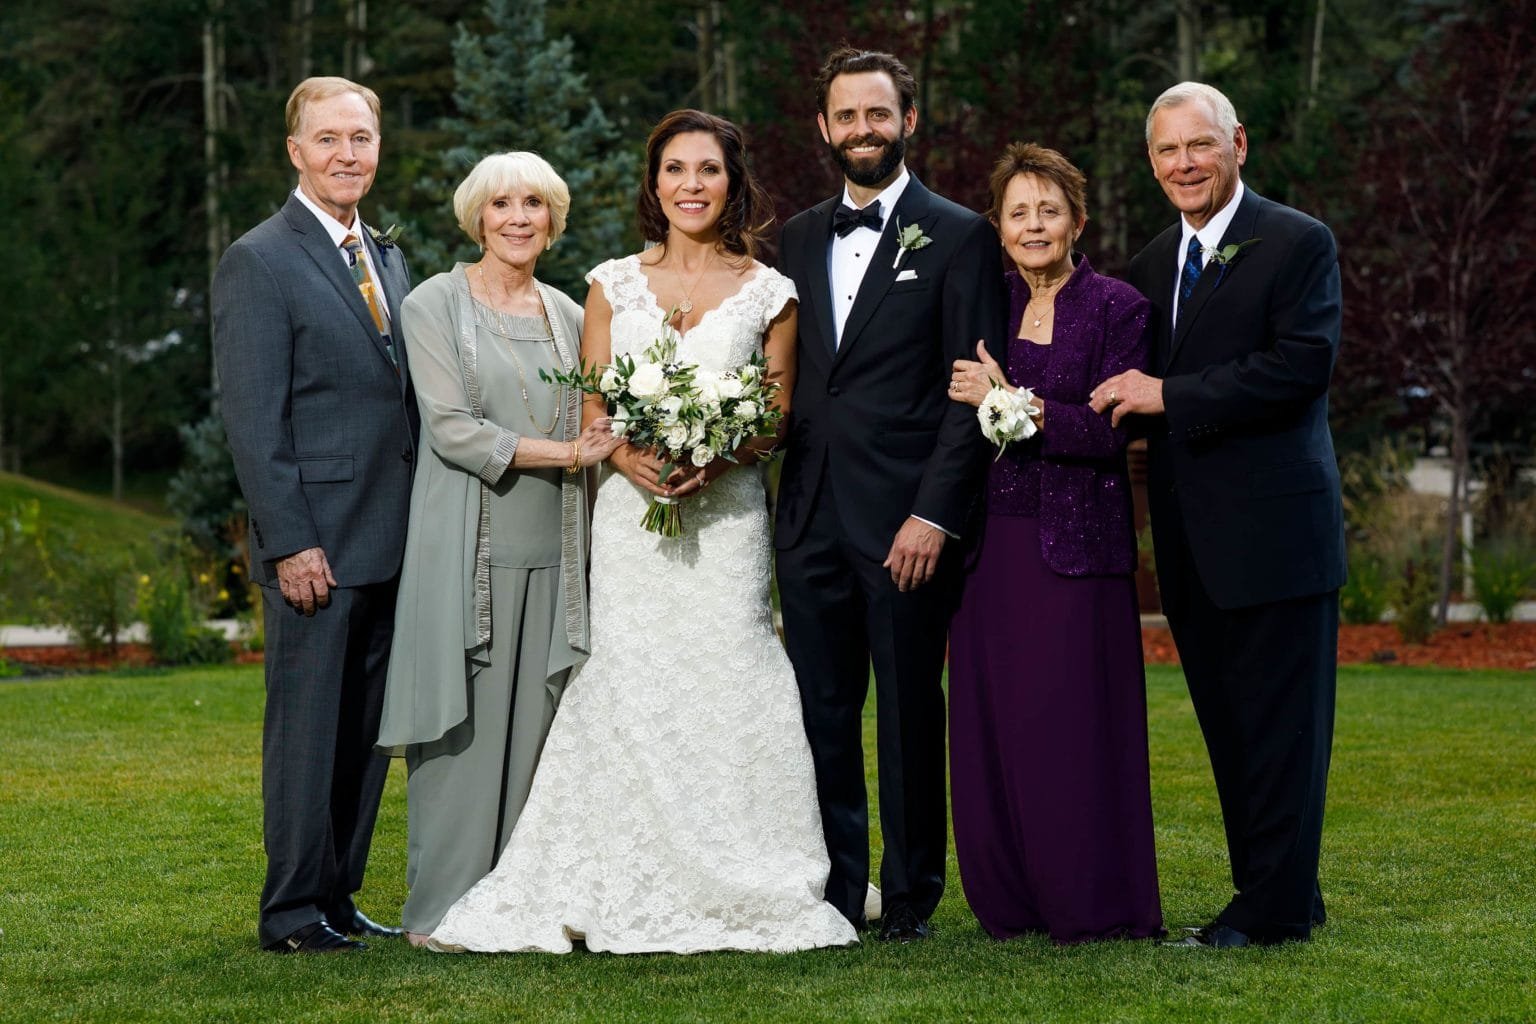 Tips For Stress-Free Family Formal Group Portraits